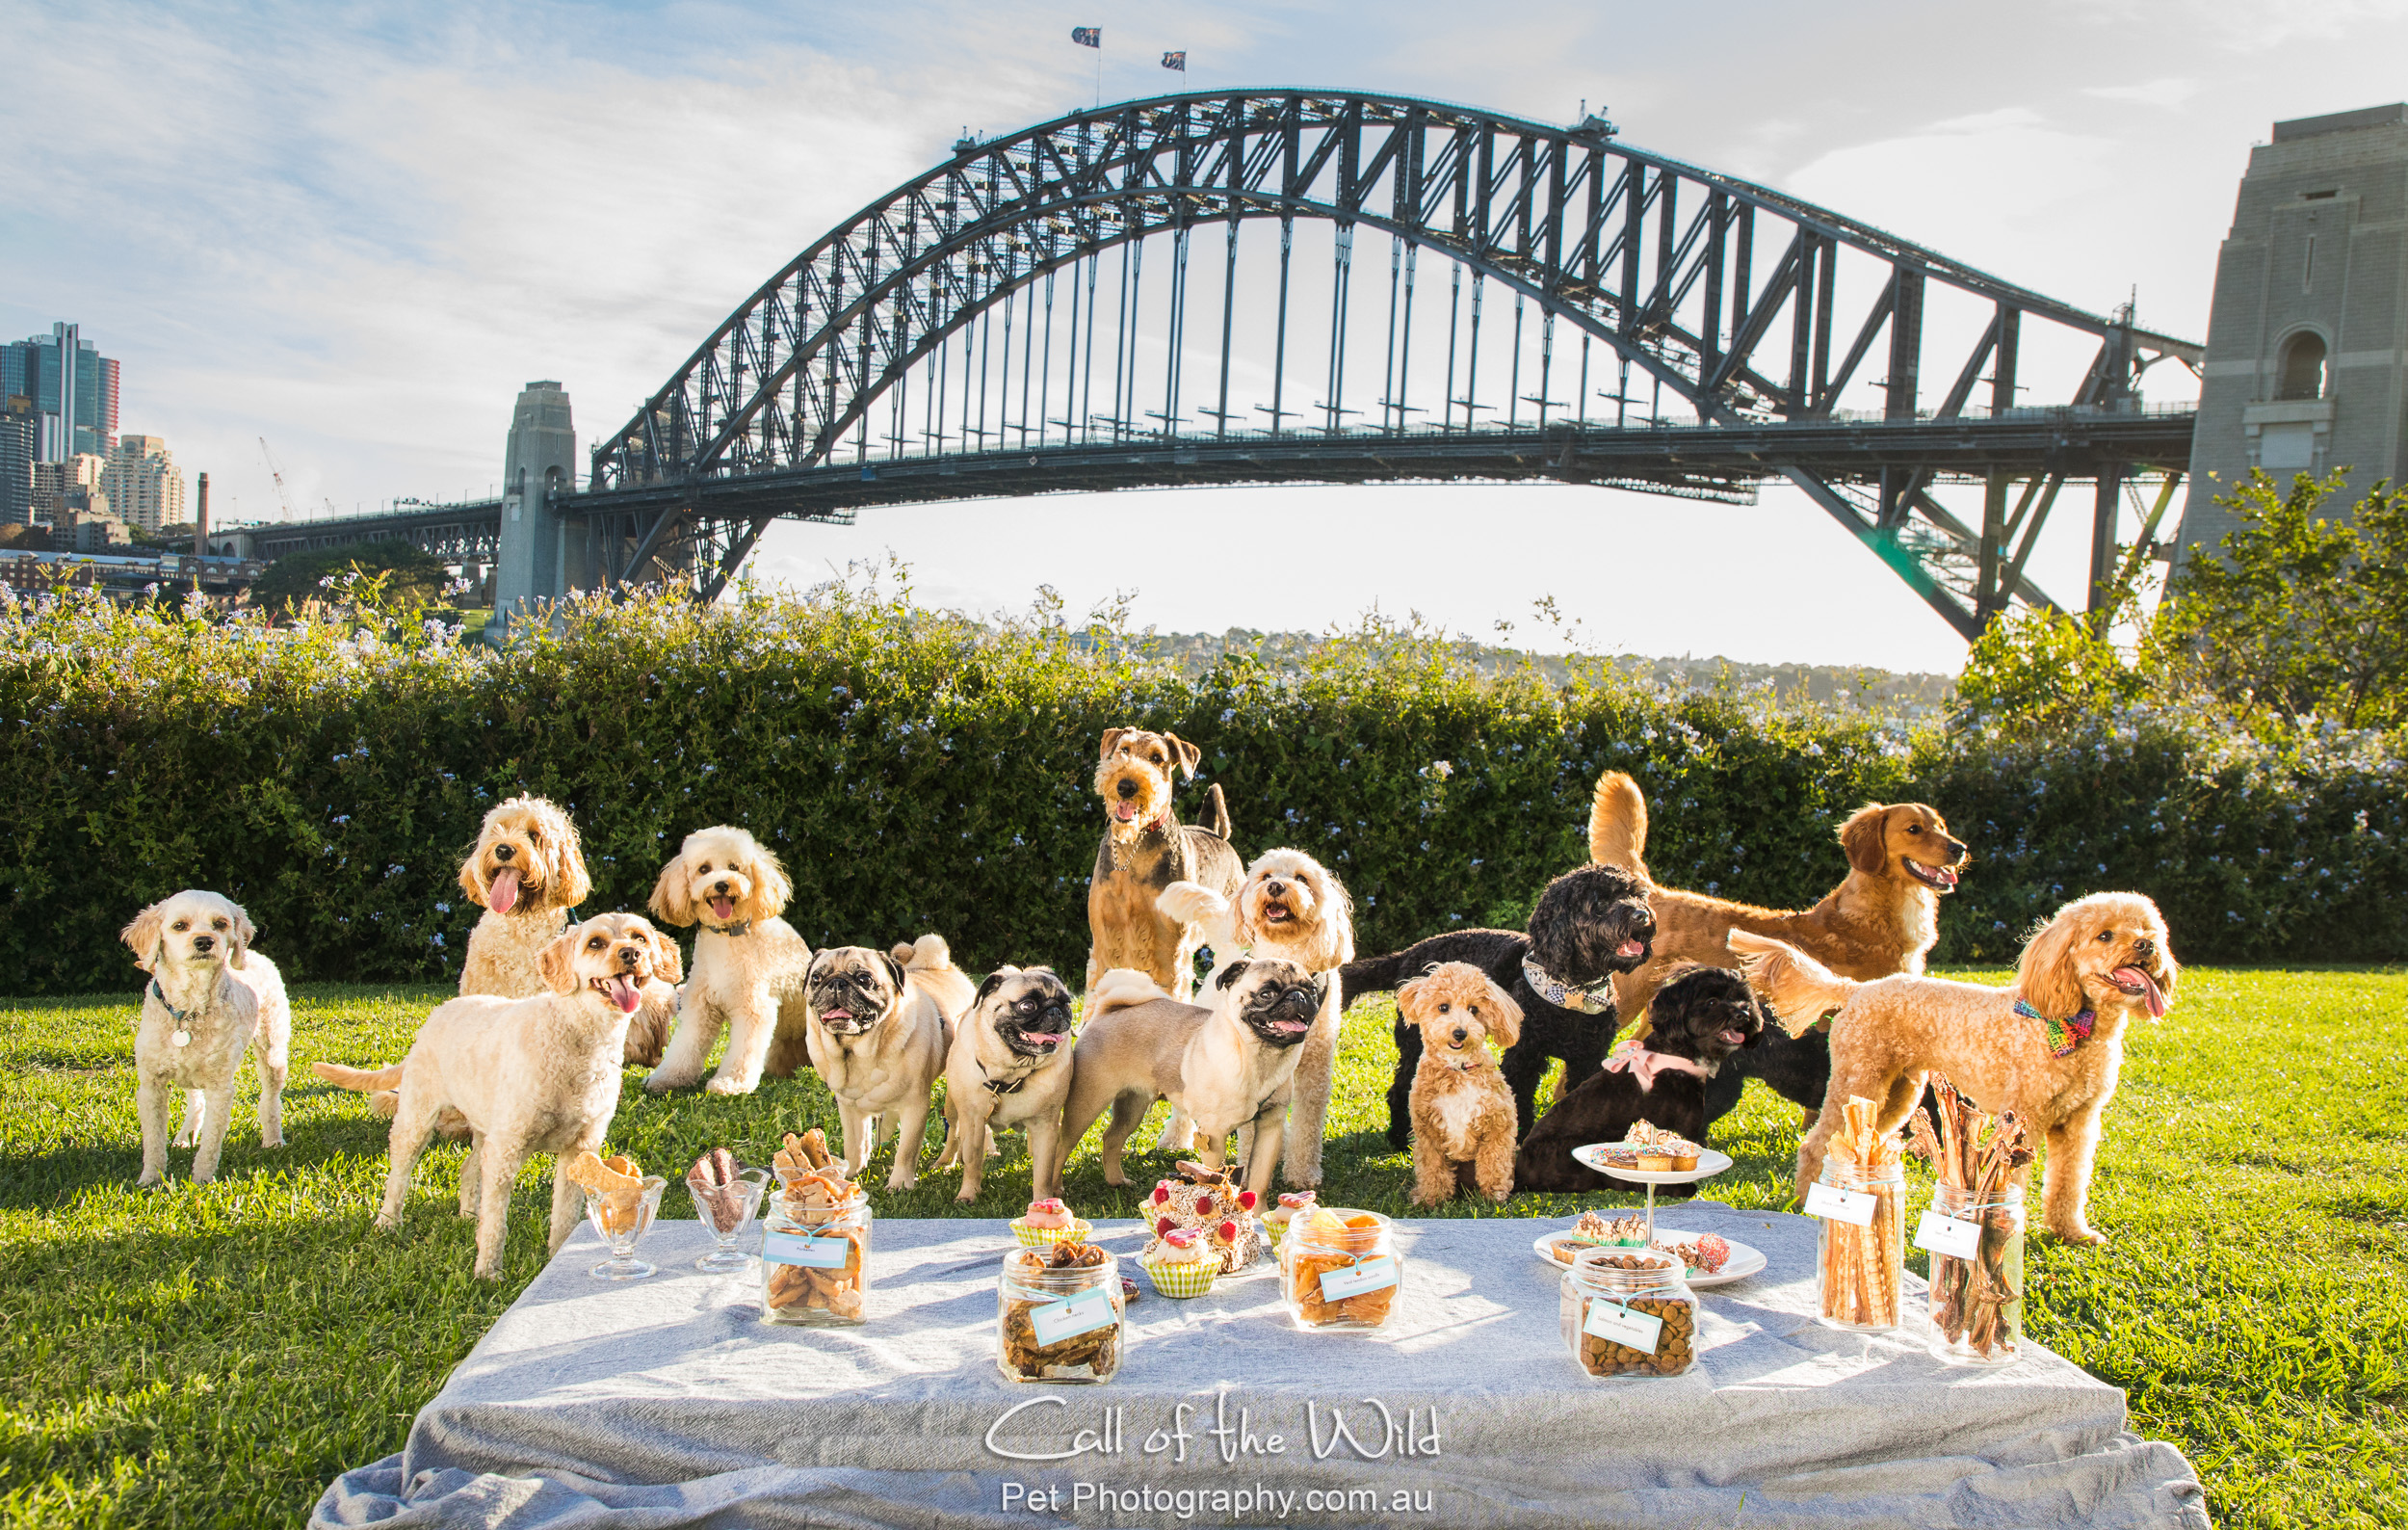 Pawty of the Year Final 2 w- all dogs- Group Doggo Shot -.jpg